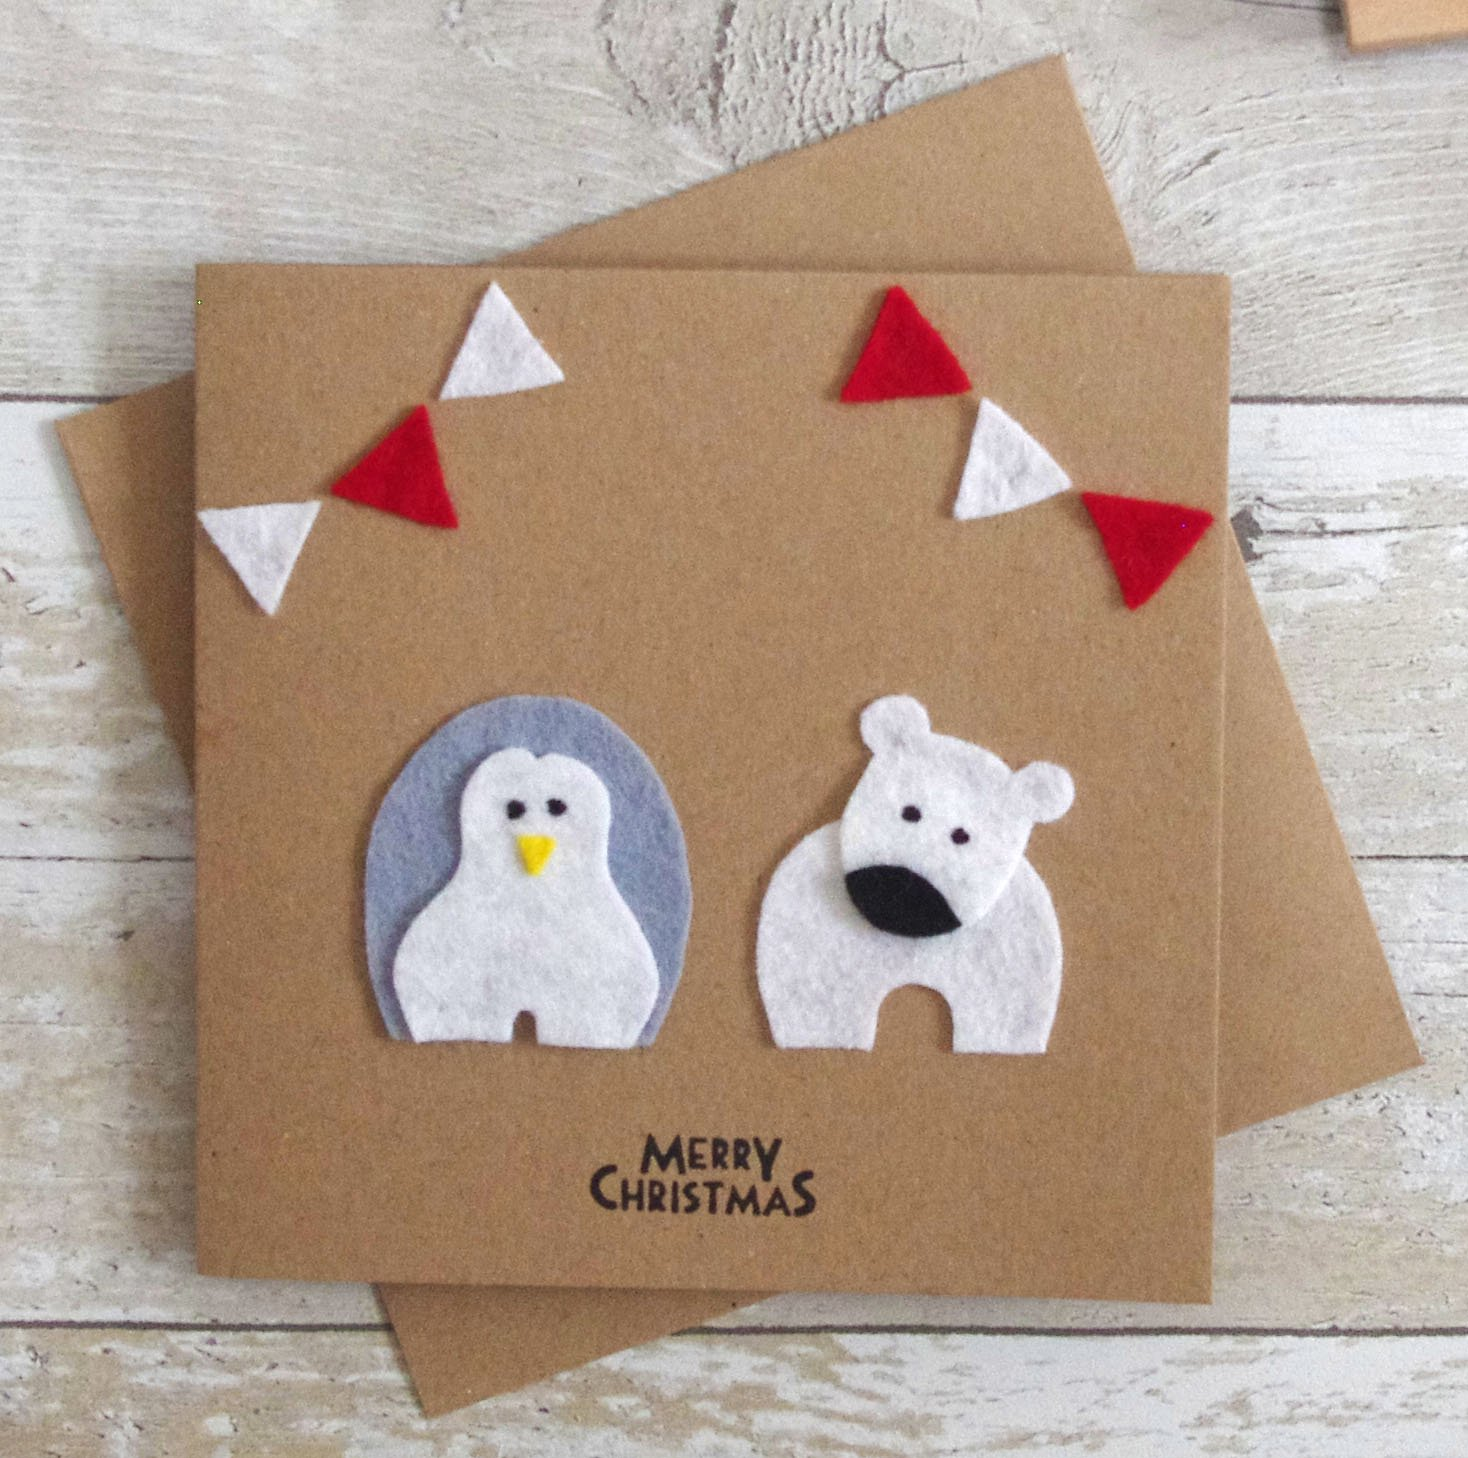 Ideas For Christmas Cards Handmade.Penguin Polar Bear Christmas Card Handmade Felt Xmas Card